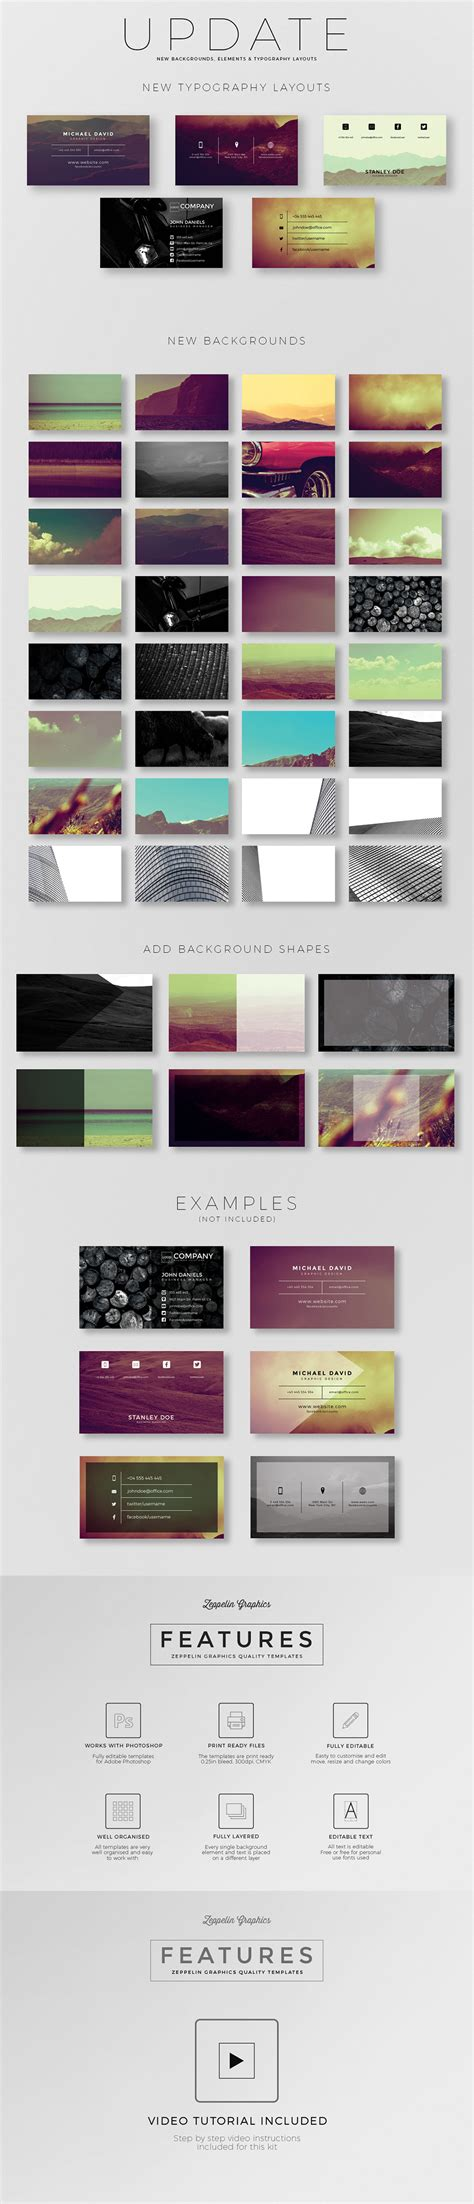 Premium Business Card Templates by Business Card Templates A Premium Business Card Creation